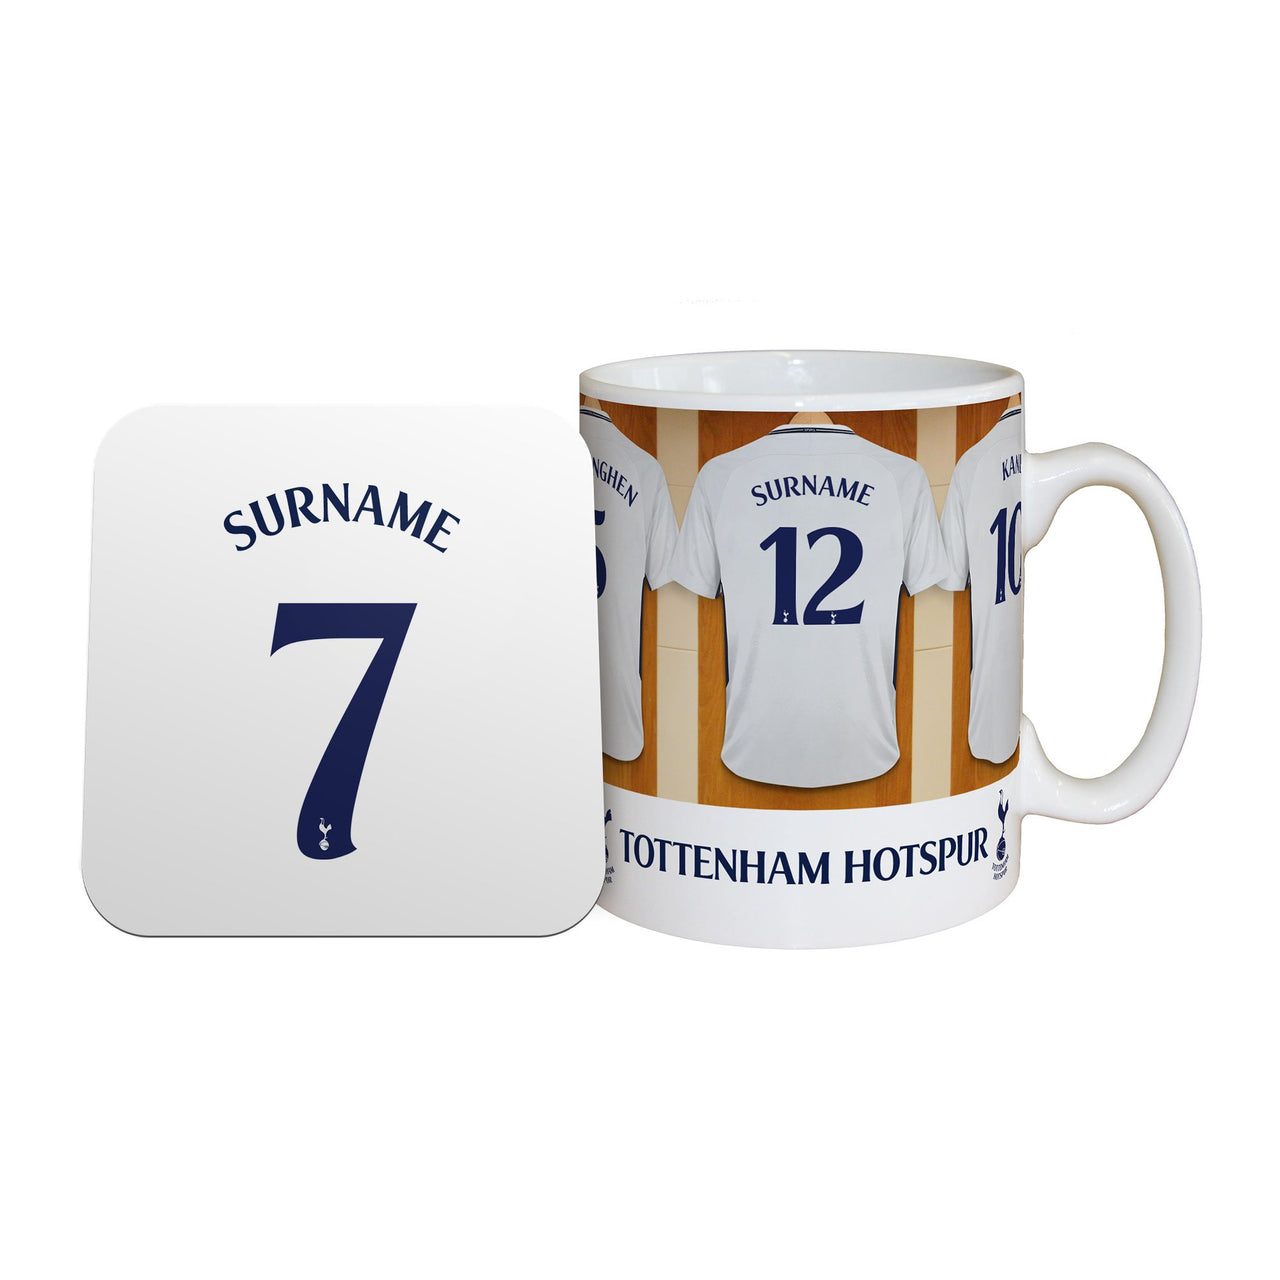 Tottenham Hotspur Dressing Room Mugs, Gifts & Coaster Set